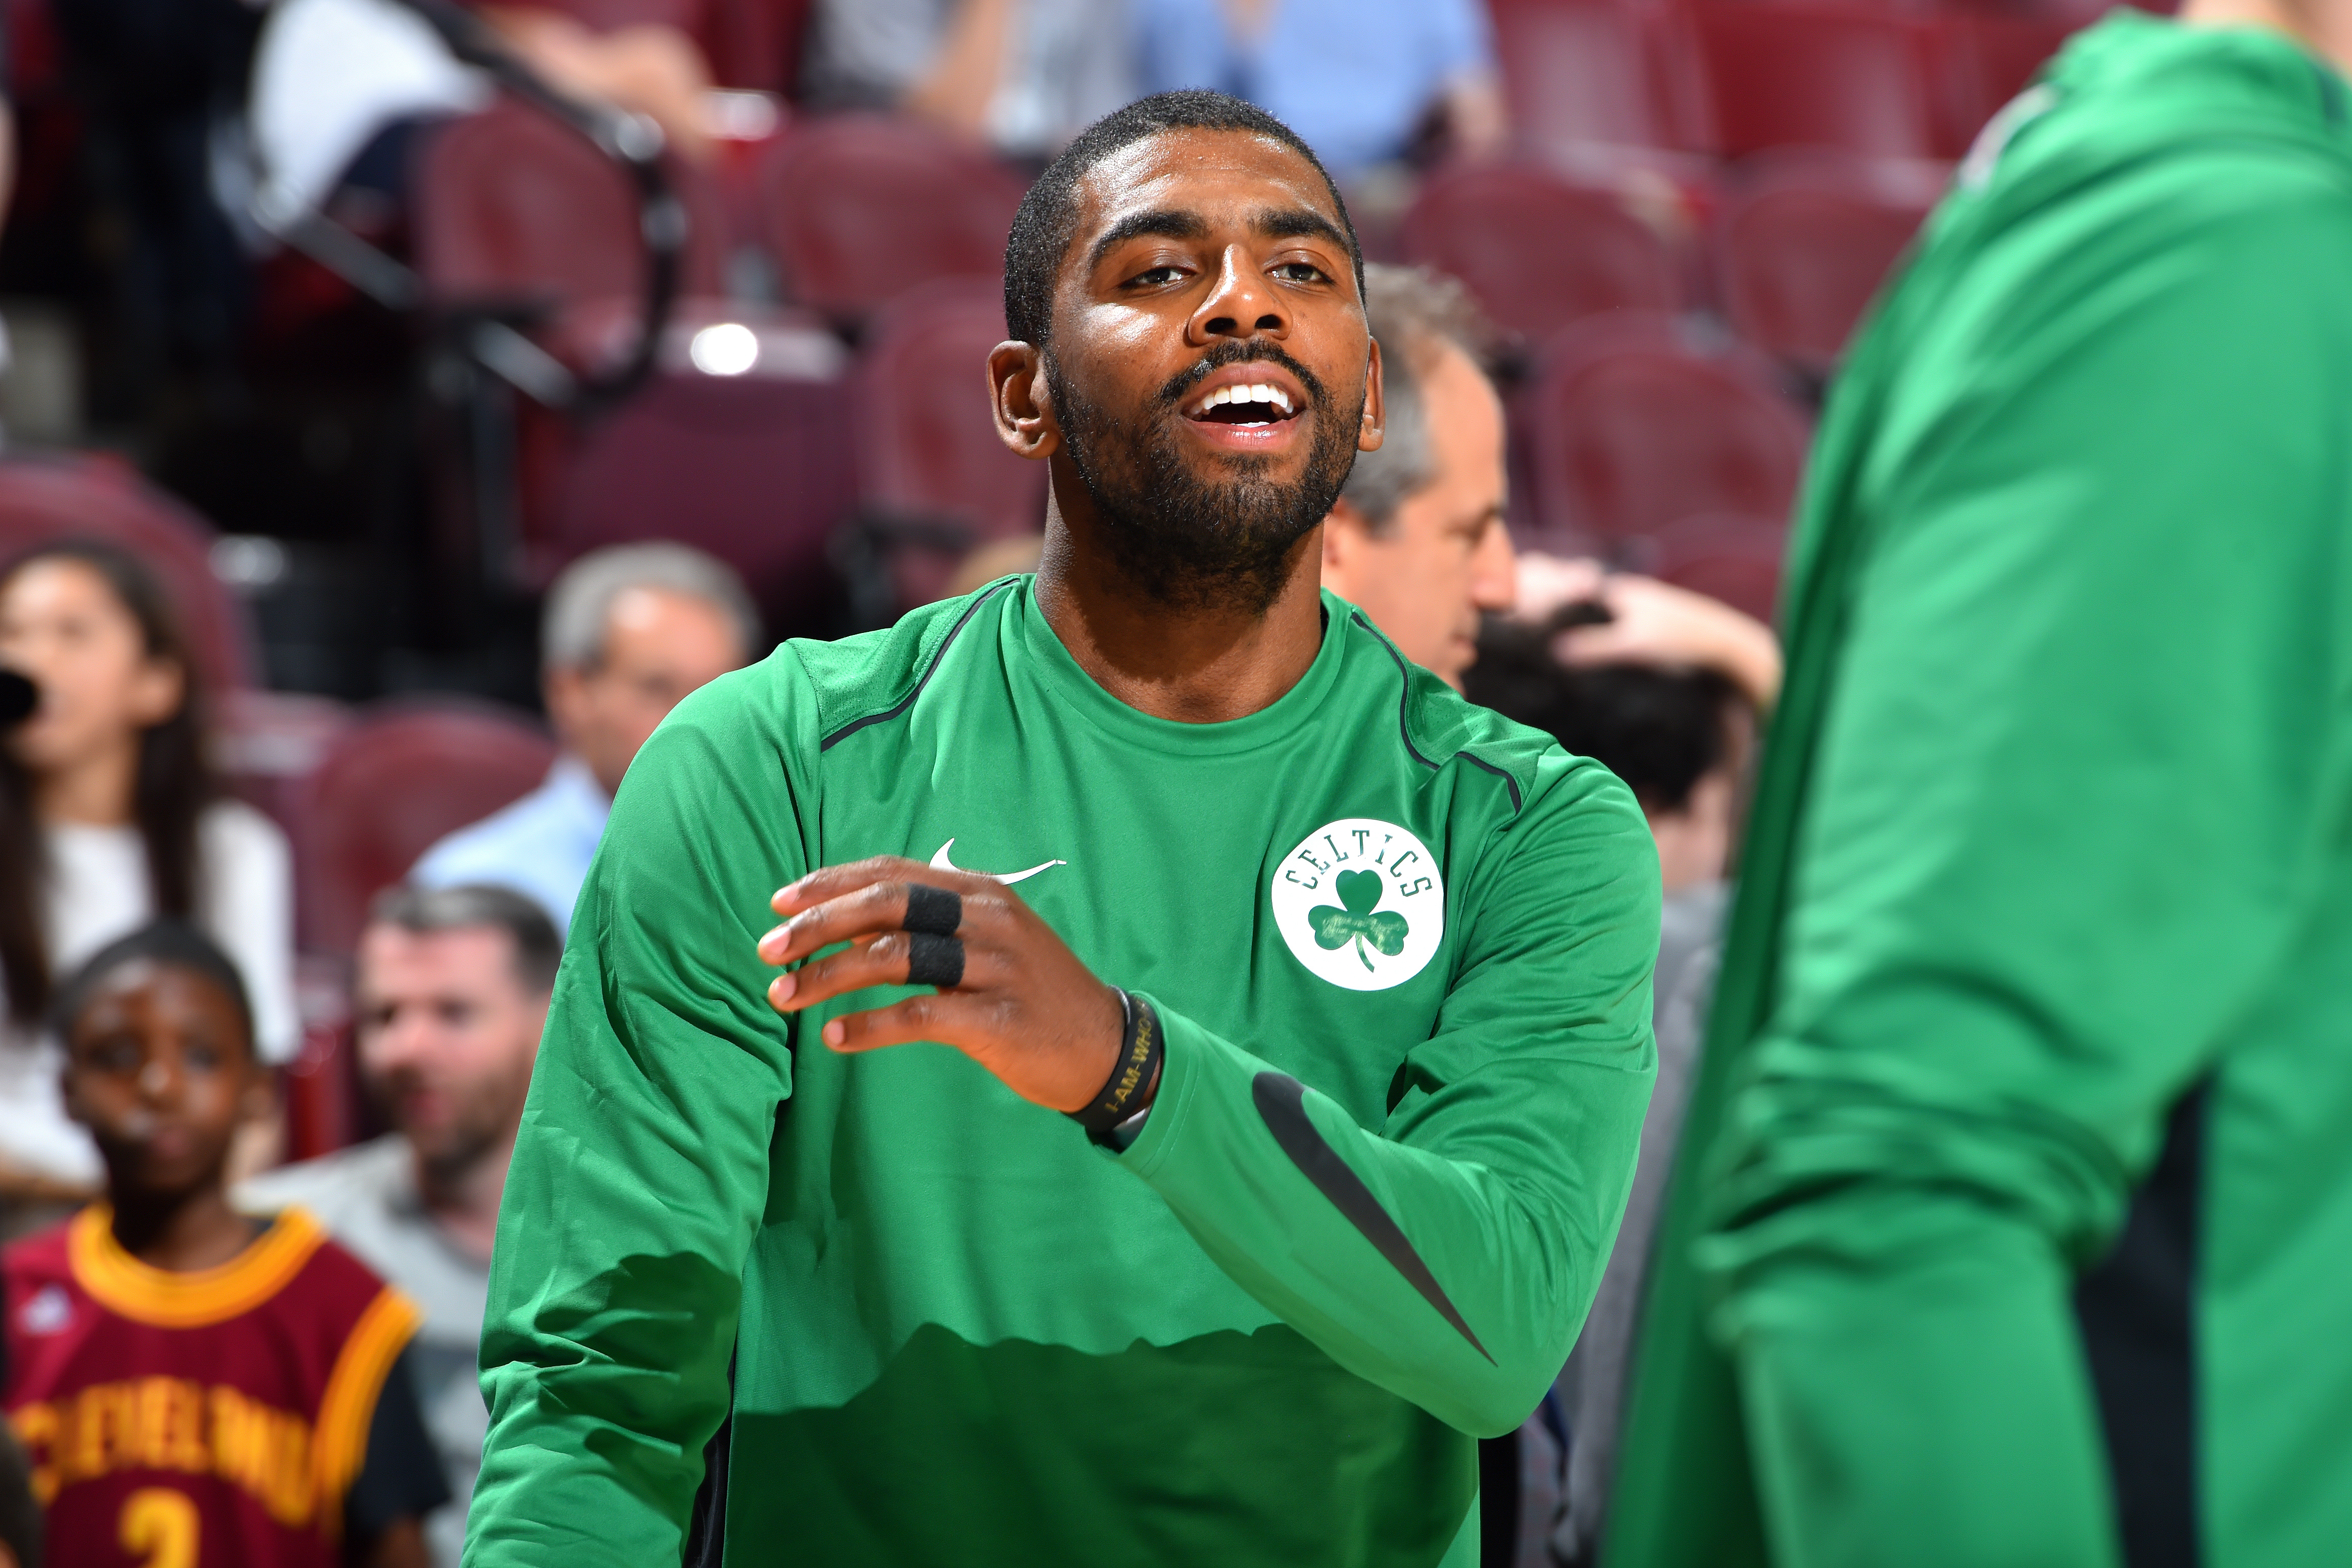 Kyrie Irving gives game-worn sneakers to young fan after win